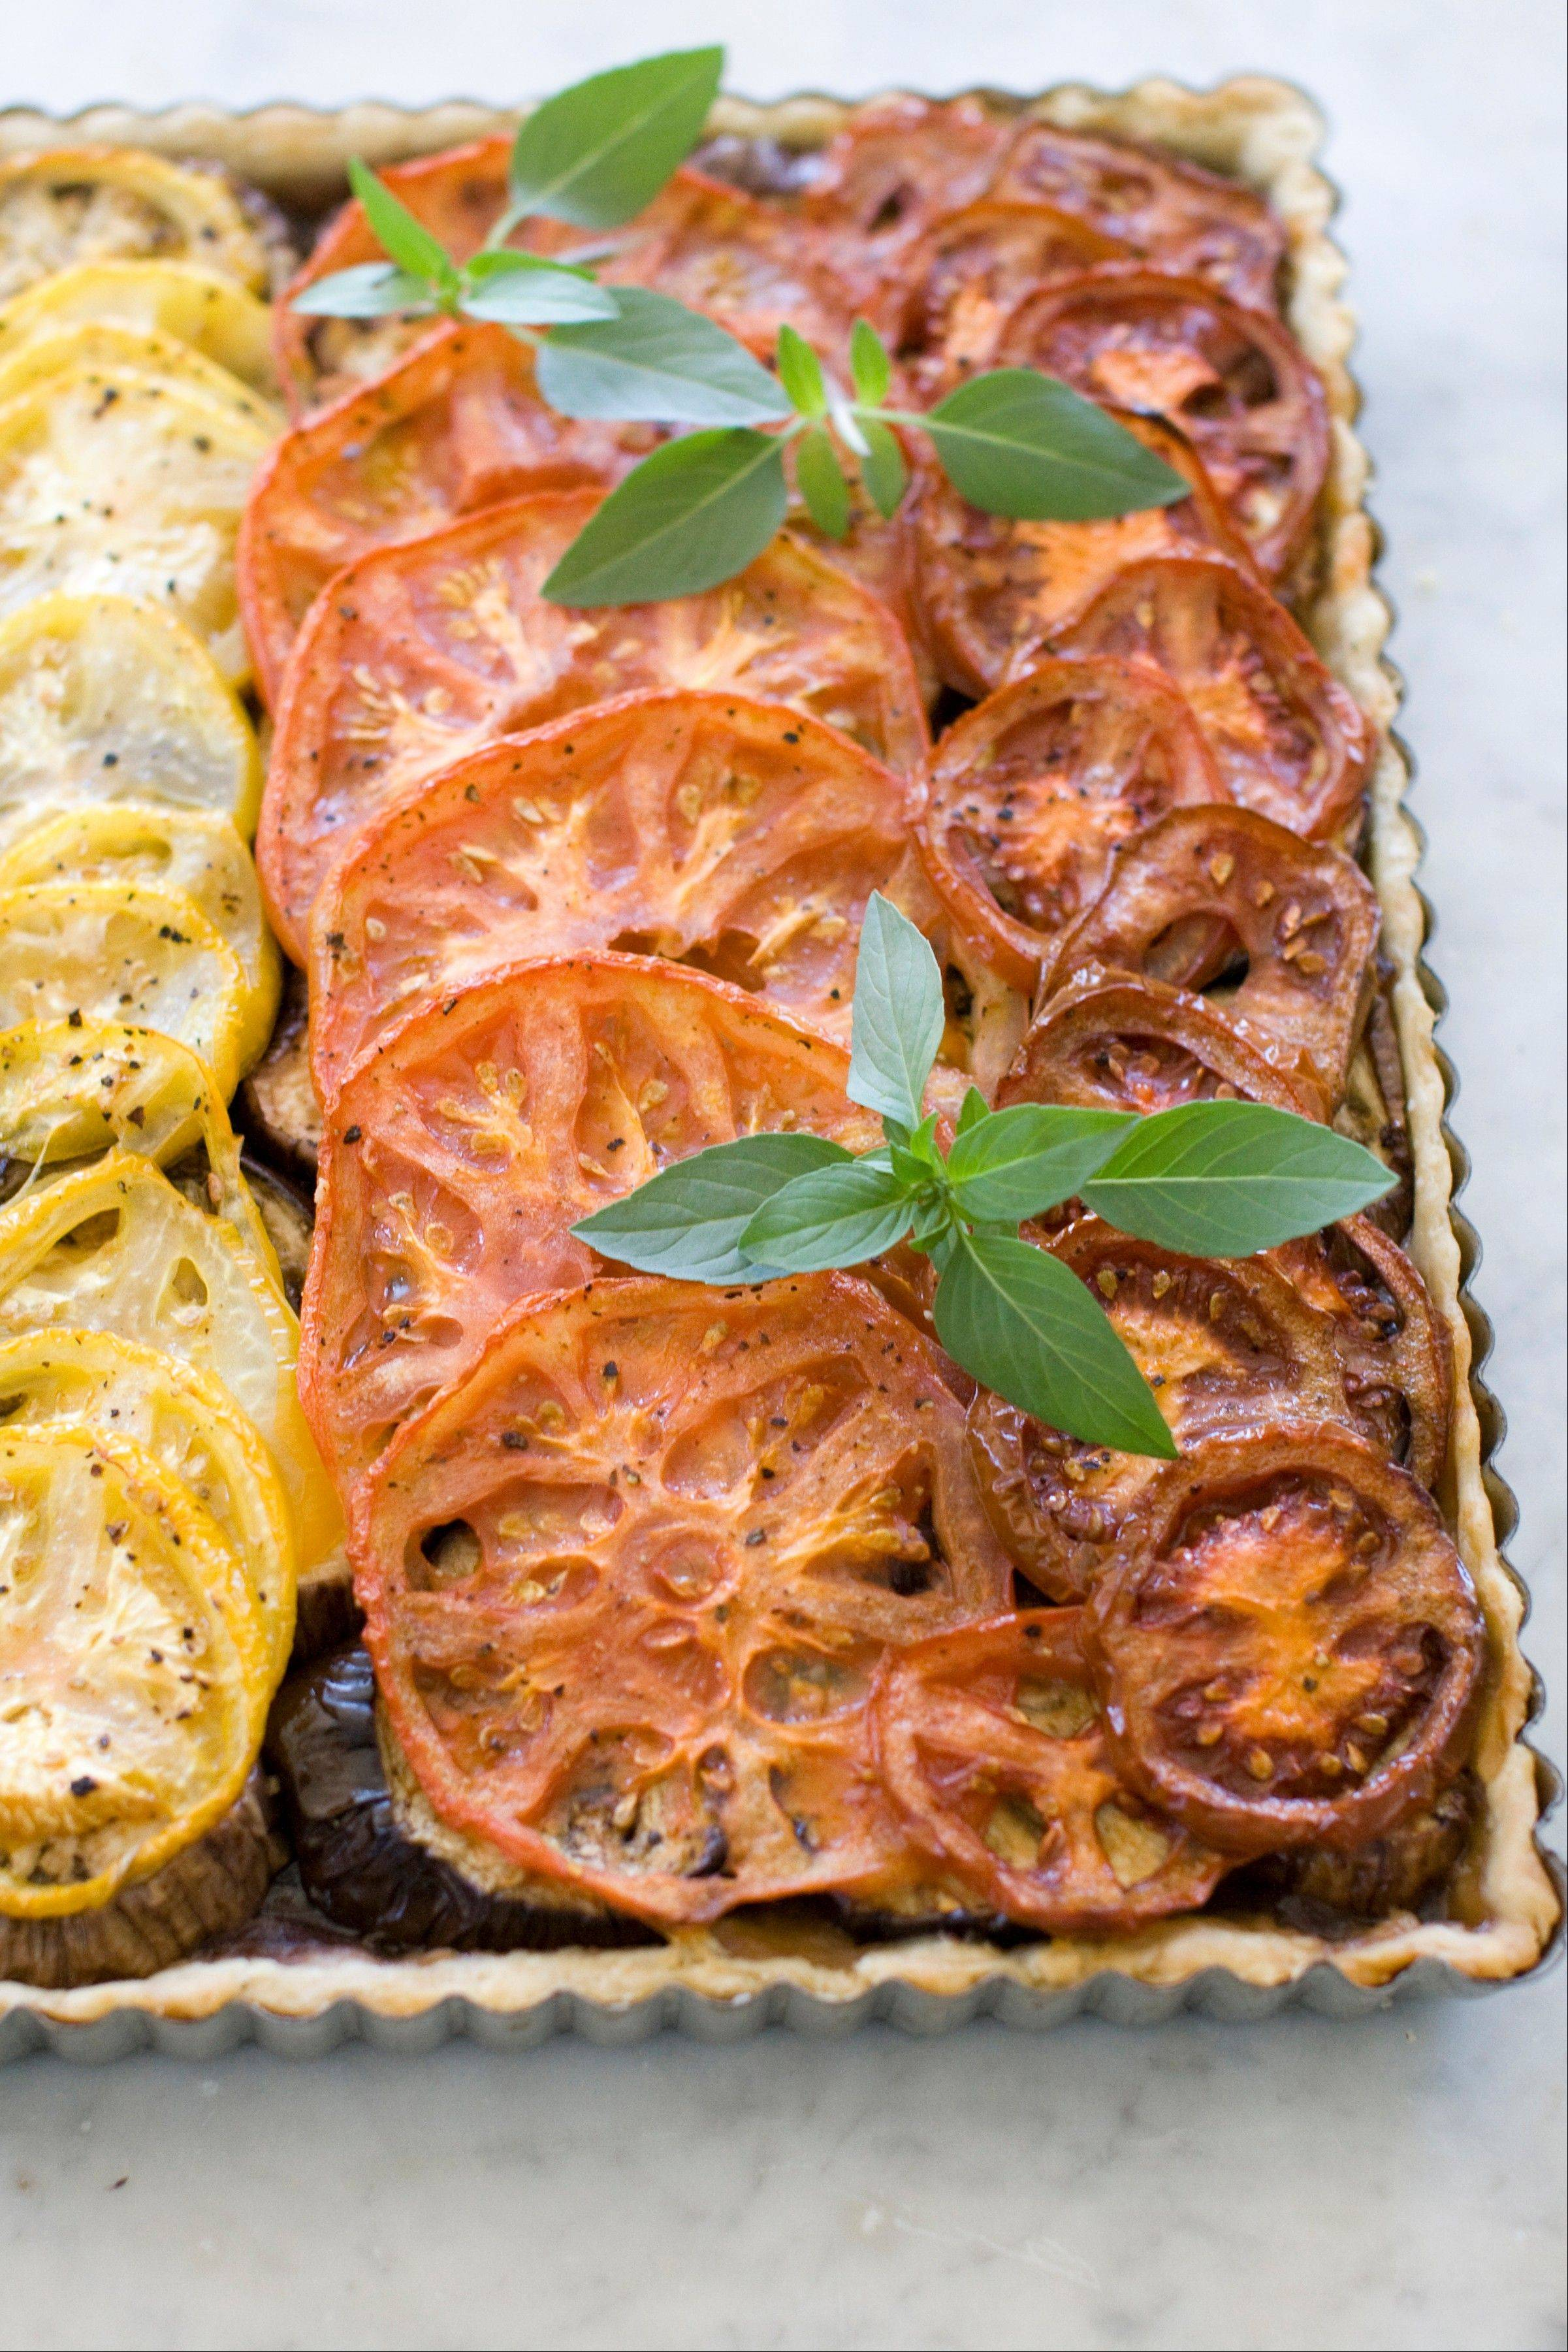 Caramelized Onion, Eggplant And Heirloom Tomato Tart